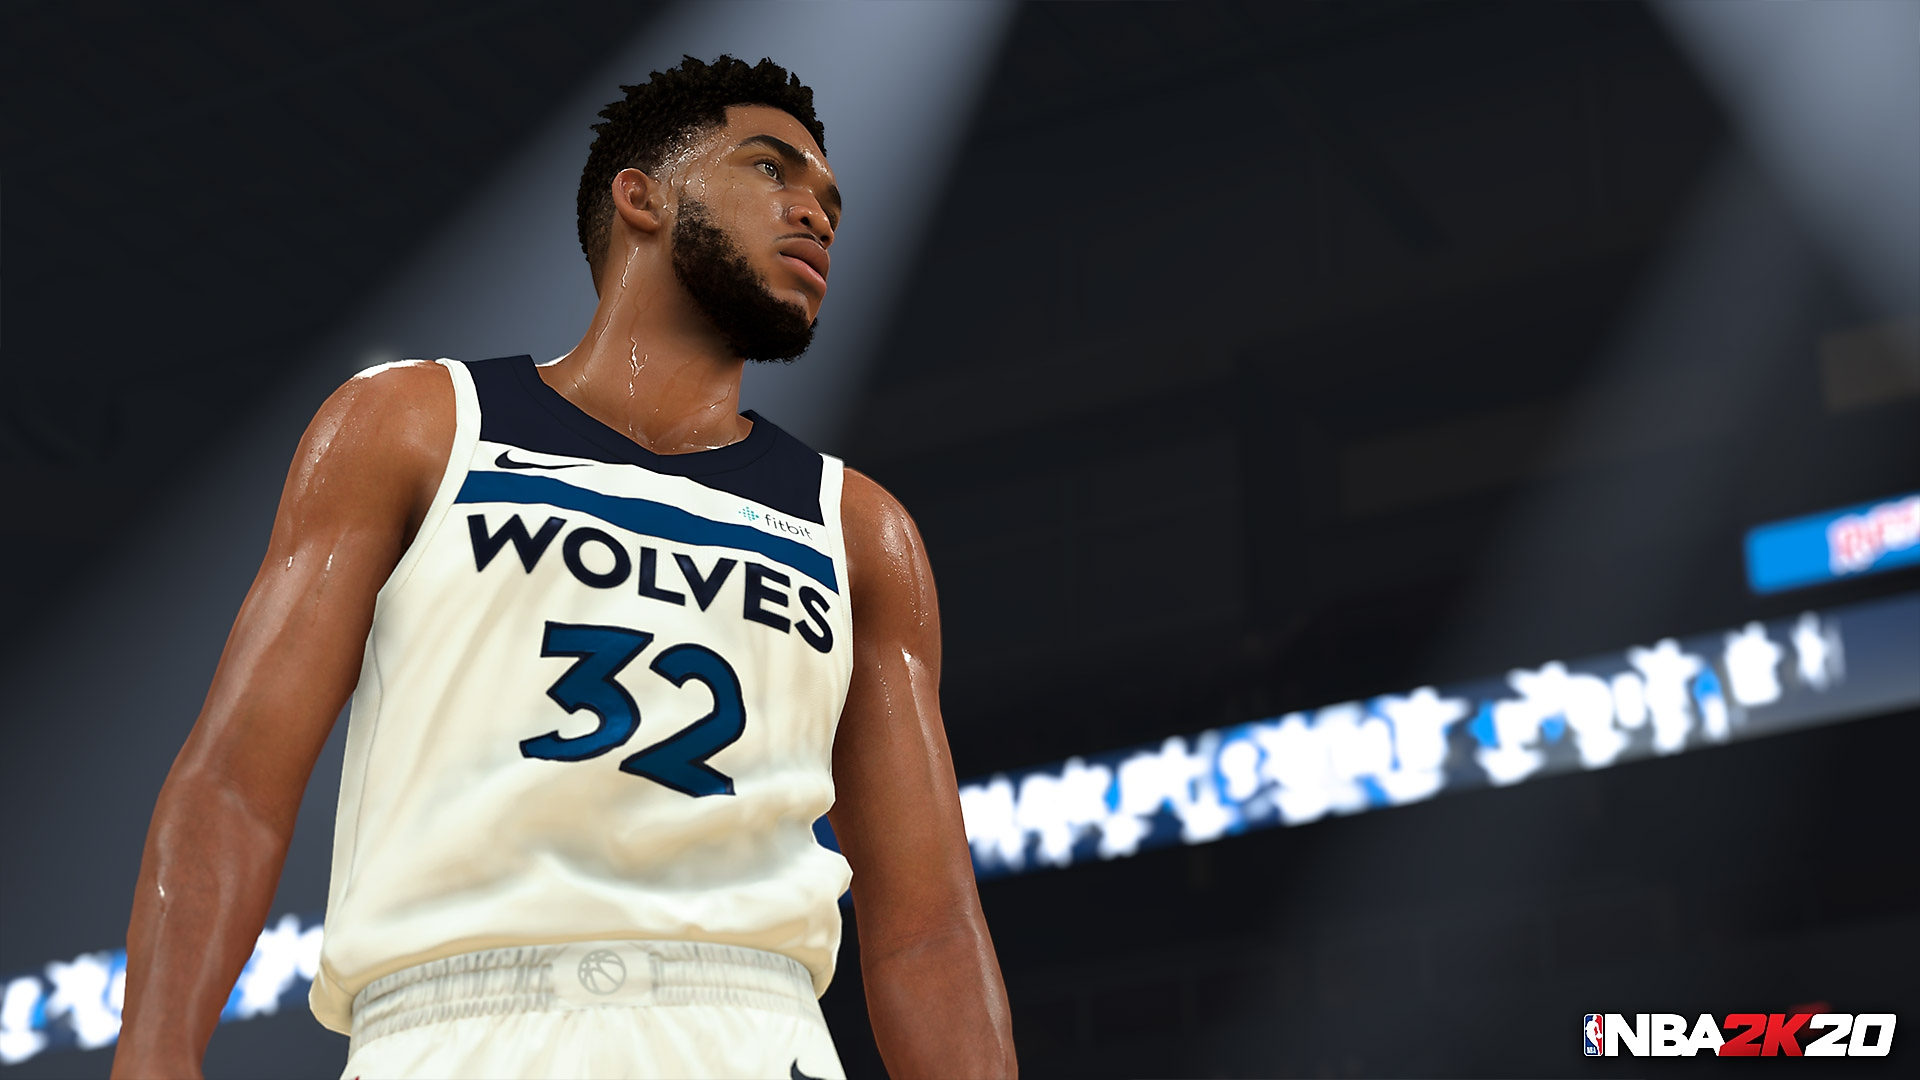 NBA 2K20 - Gallery Screengrab 3